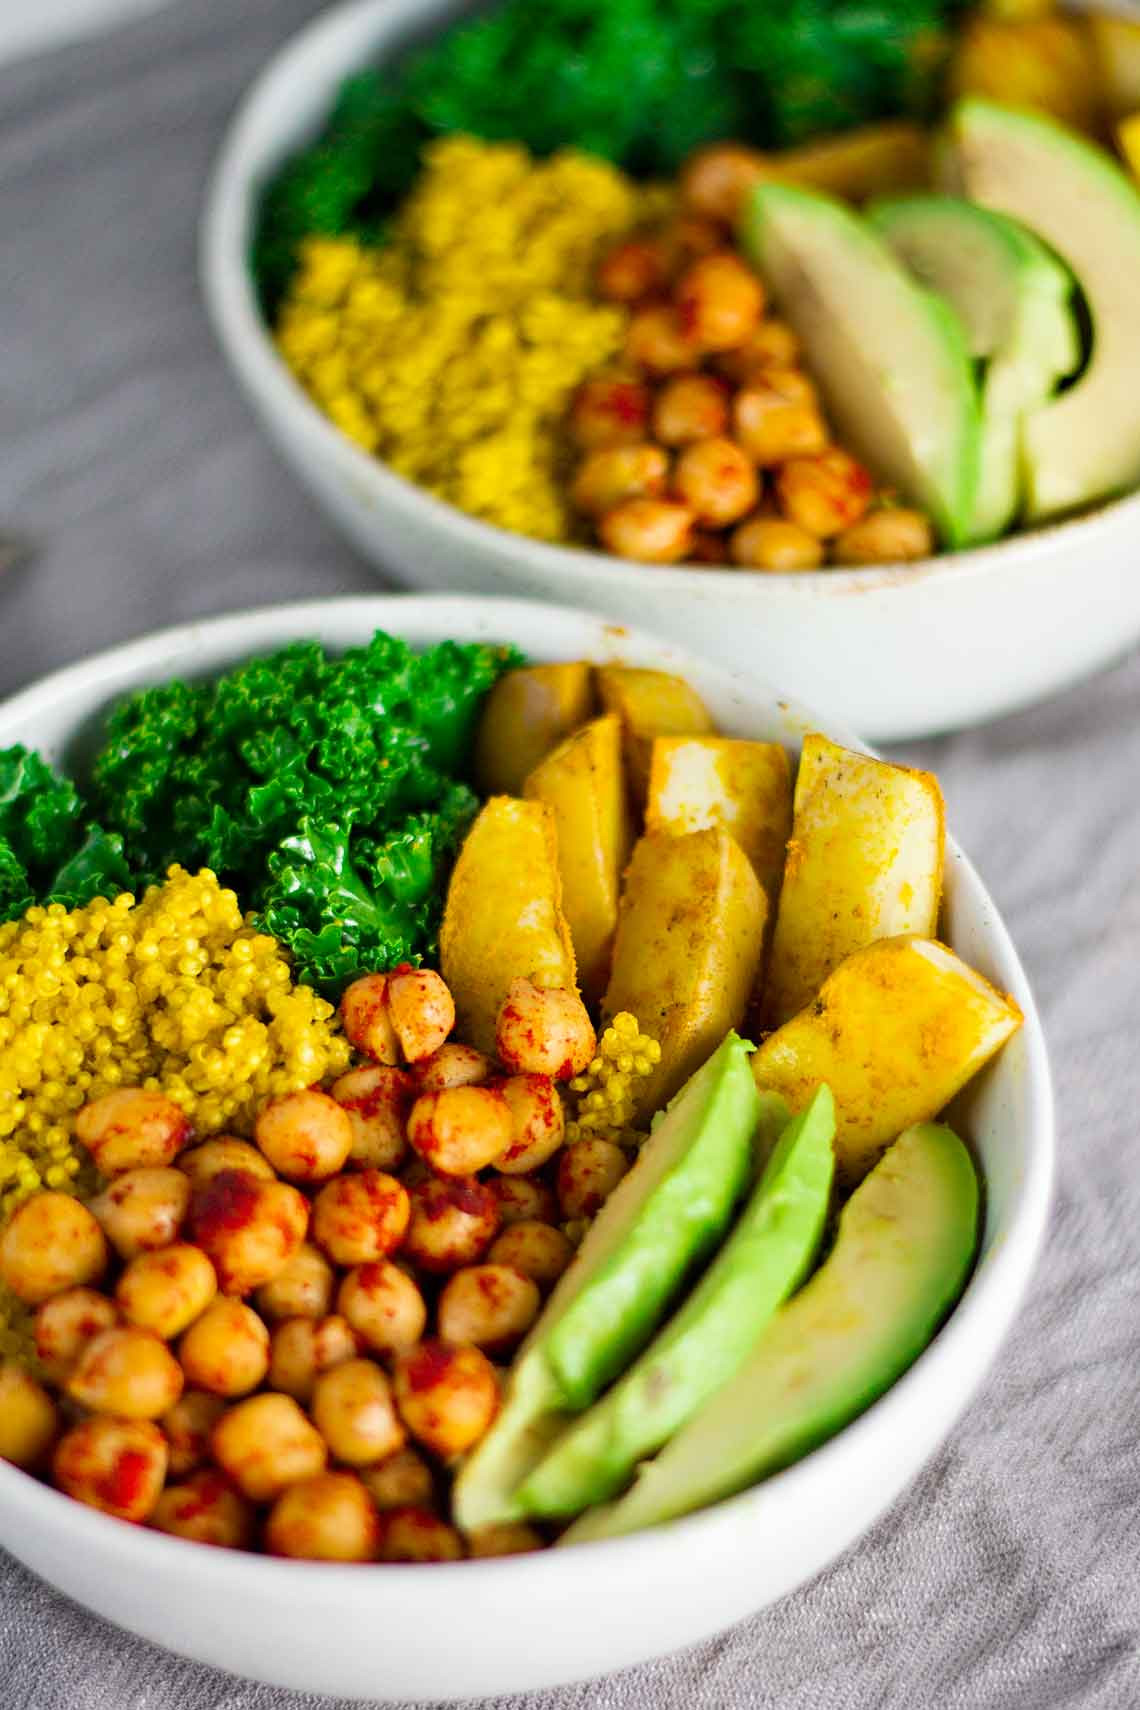 Healthy Quinoa Bowls  Vegan Turmeric Quinoa Power Bowls Jar Lemons